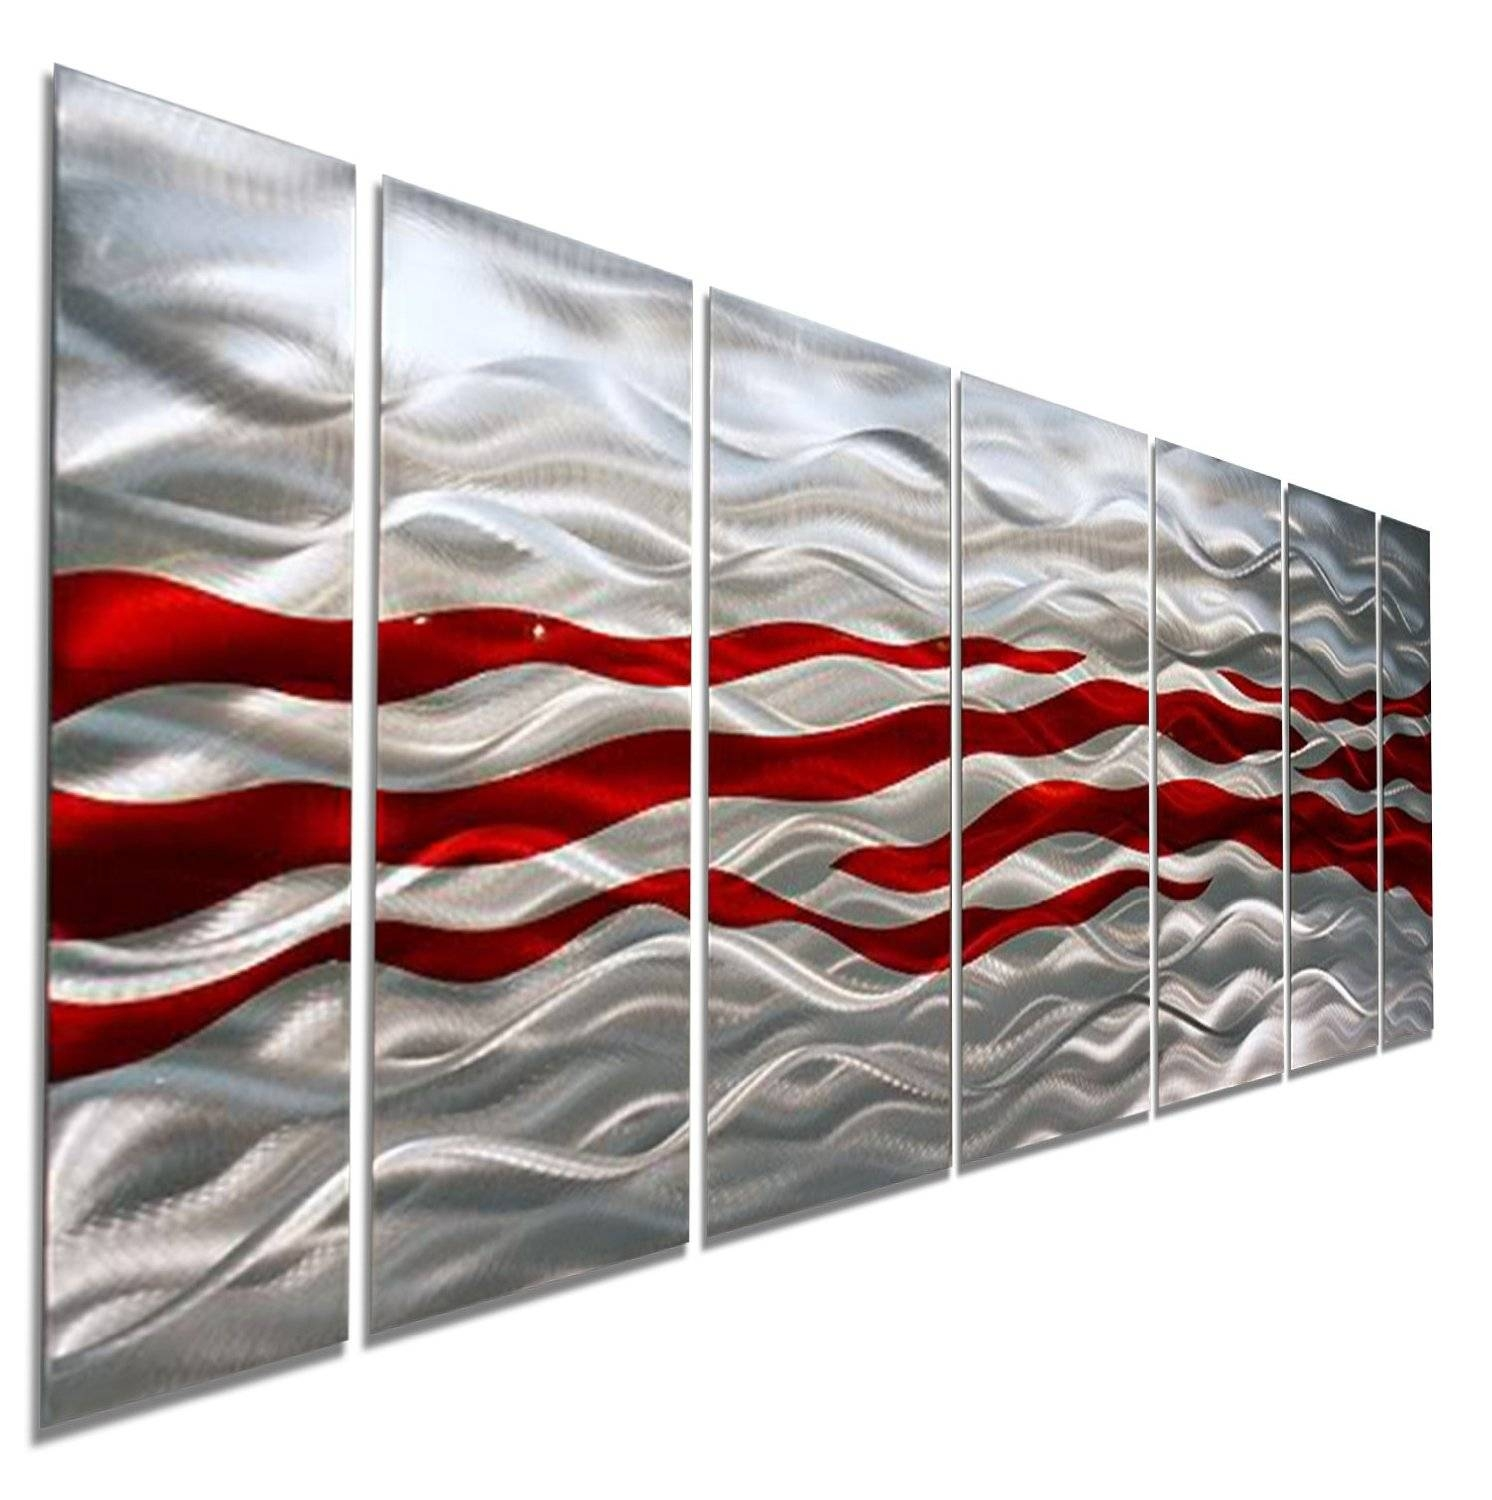 Caliente – Red & Silver Modern Abstract Metal Wall Artjon Within 2018 Modern Abstract Metal Wall Art (View 6 of 20)